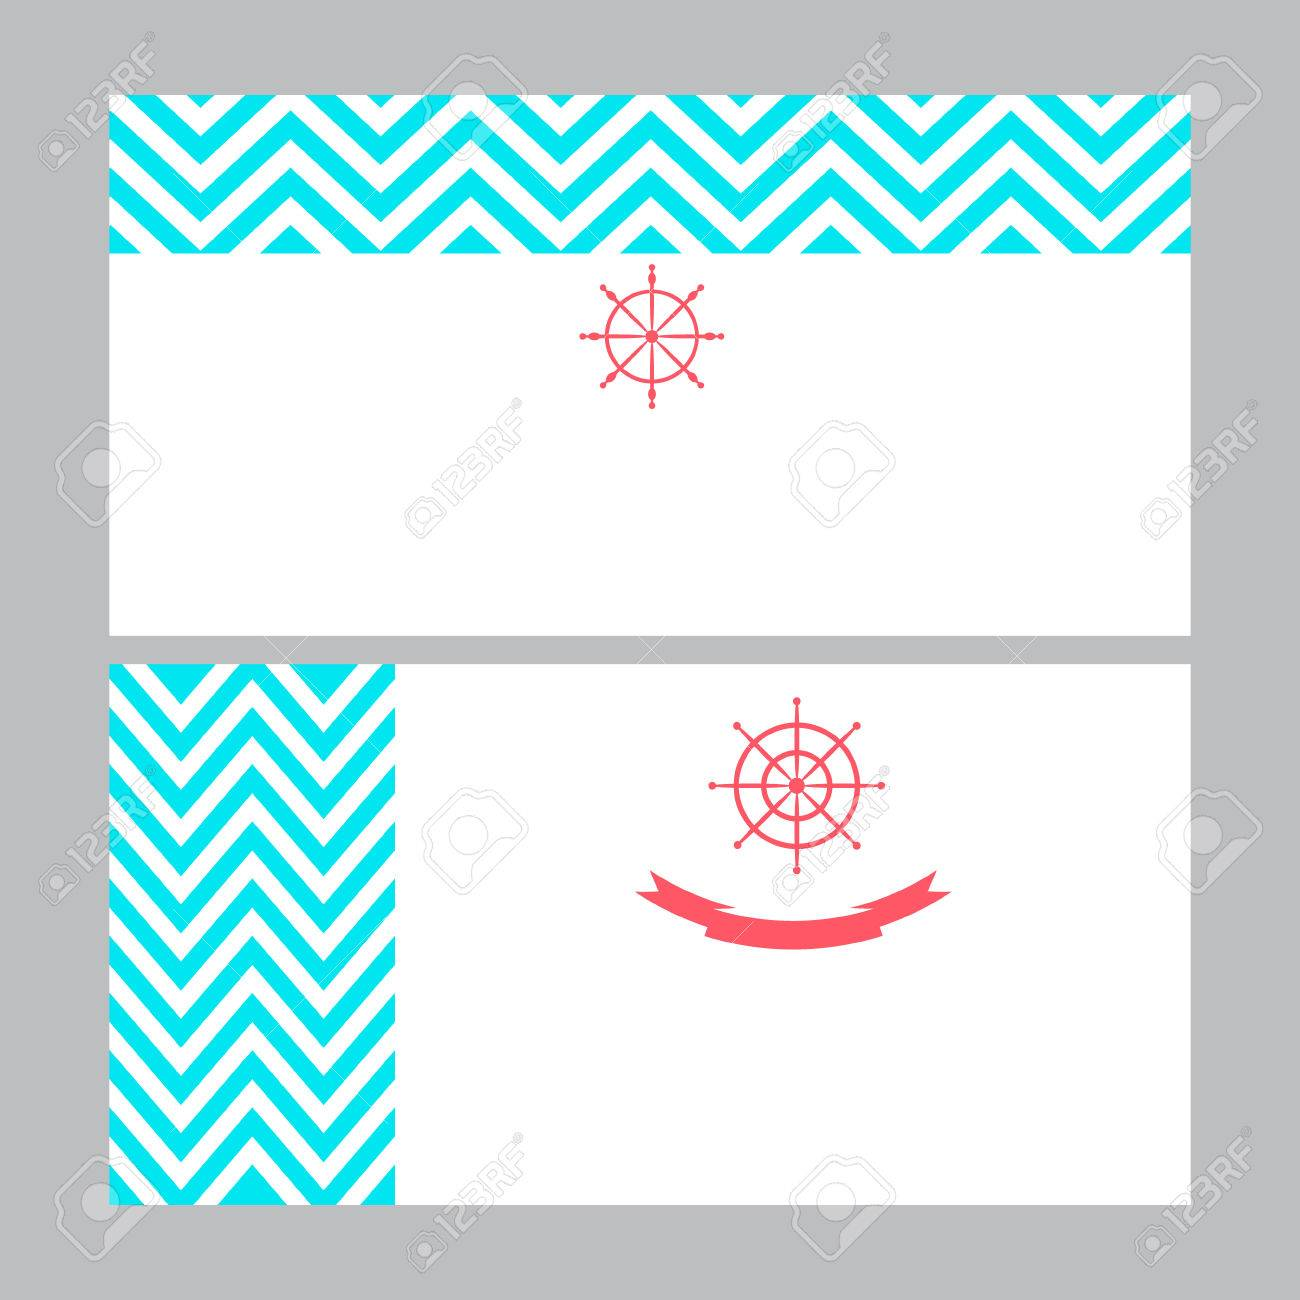 Business Card Template In Nautical Marine Style With Turquoise ...